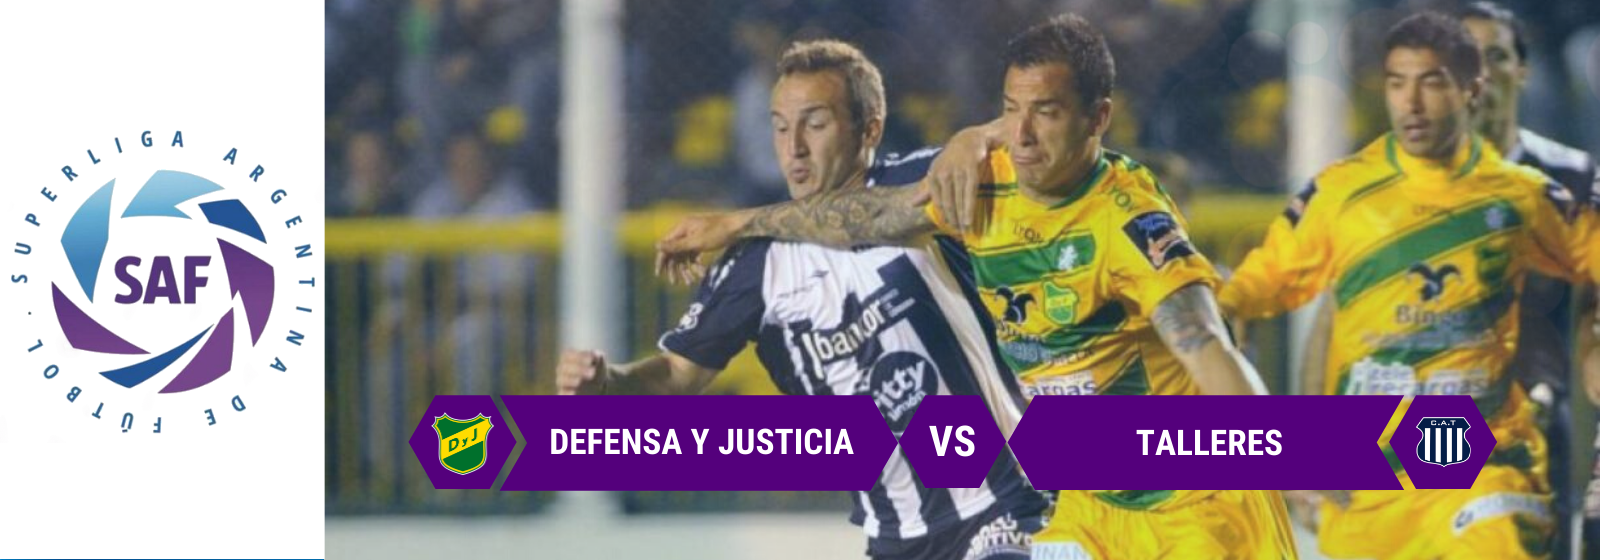 Asianconnect: Defensa y Justicia vs Talleres Odds for January 26, 2020